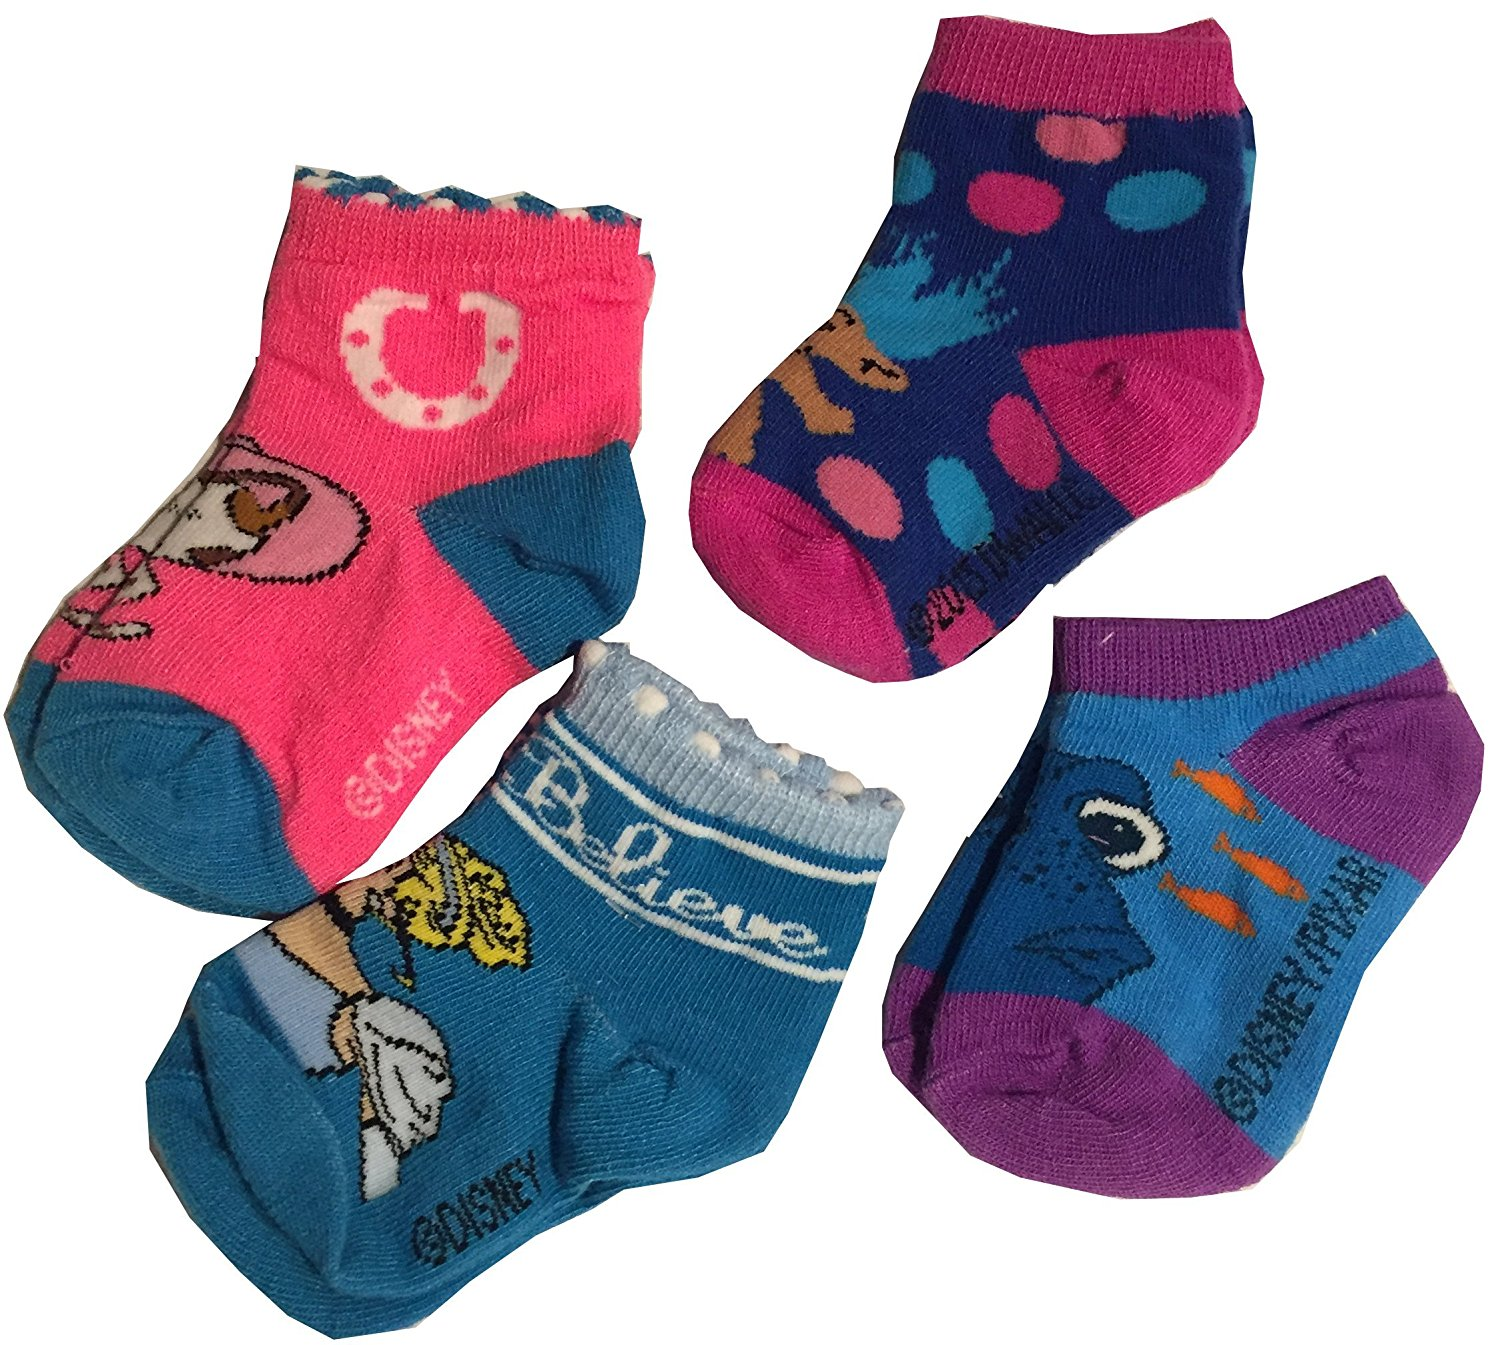 Cheap Snap Socks find Snap Socks deals on line at Alibaba